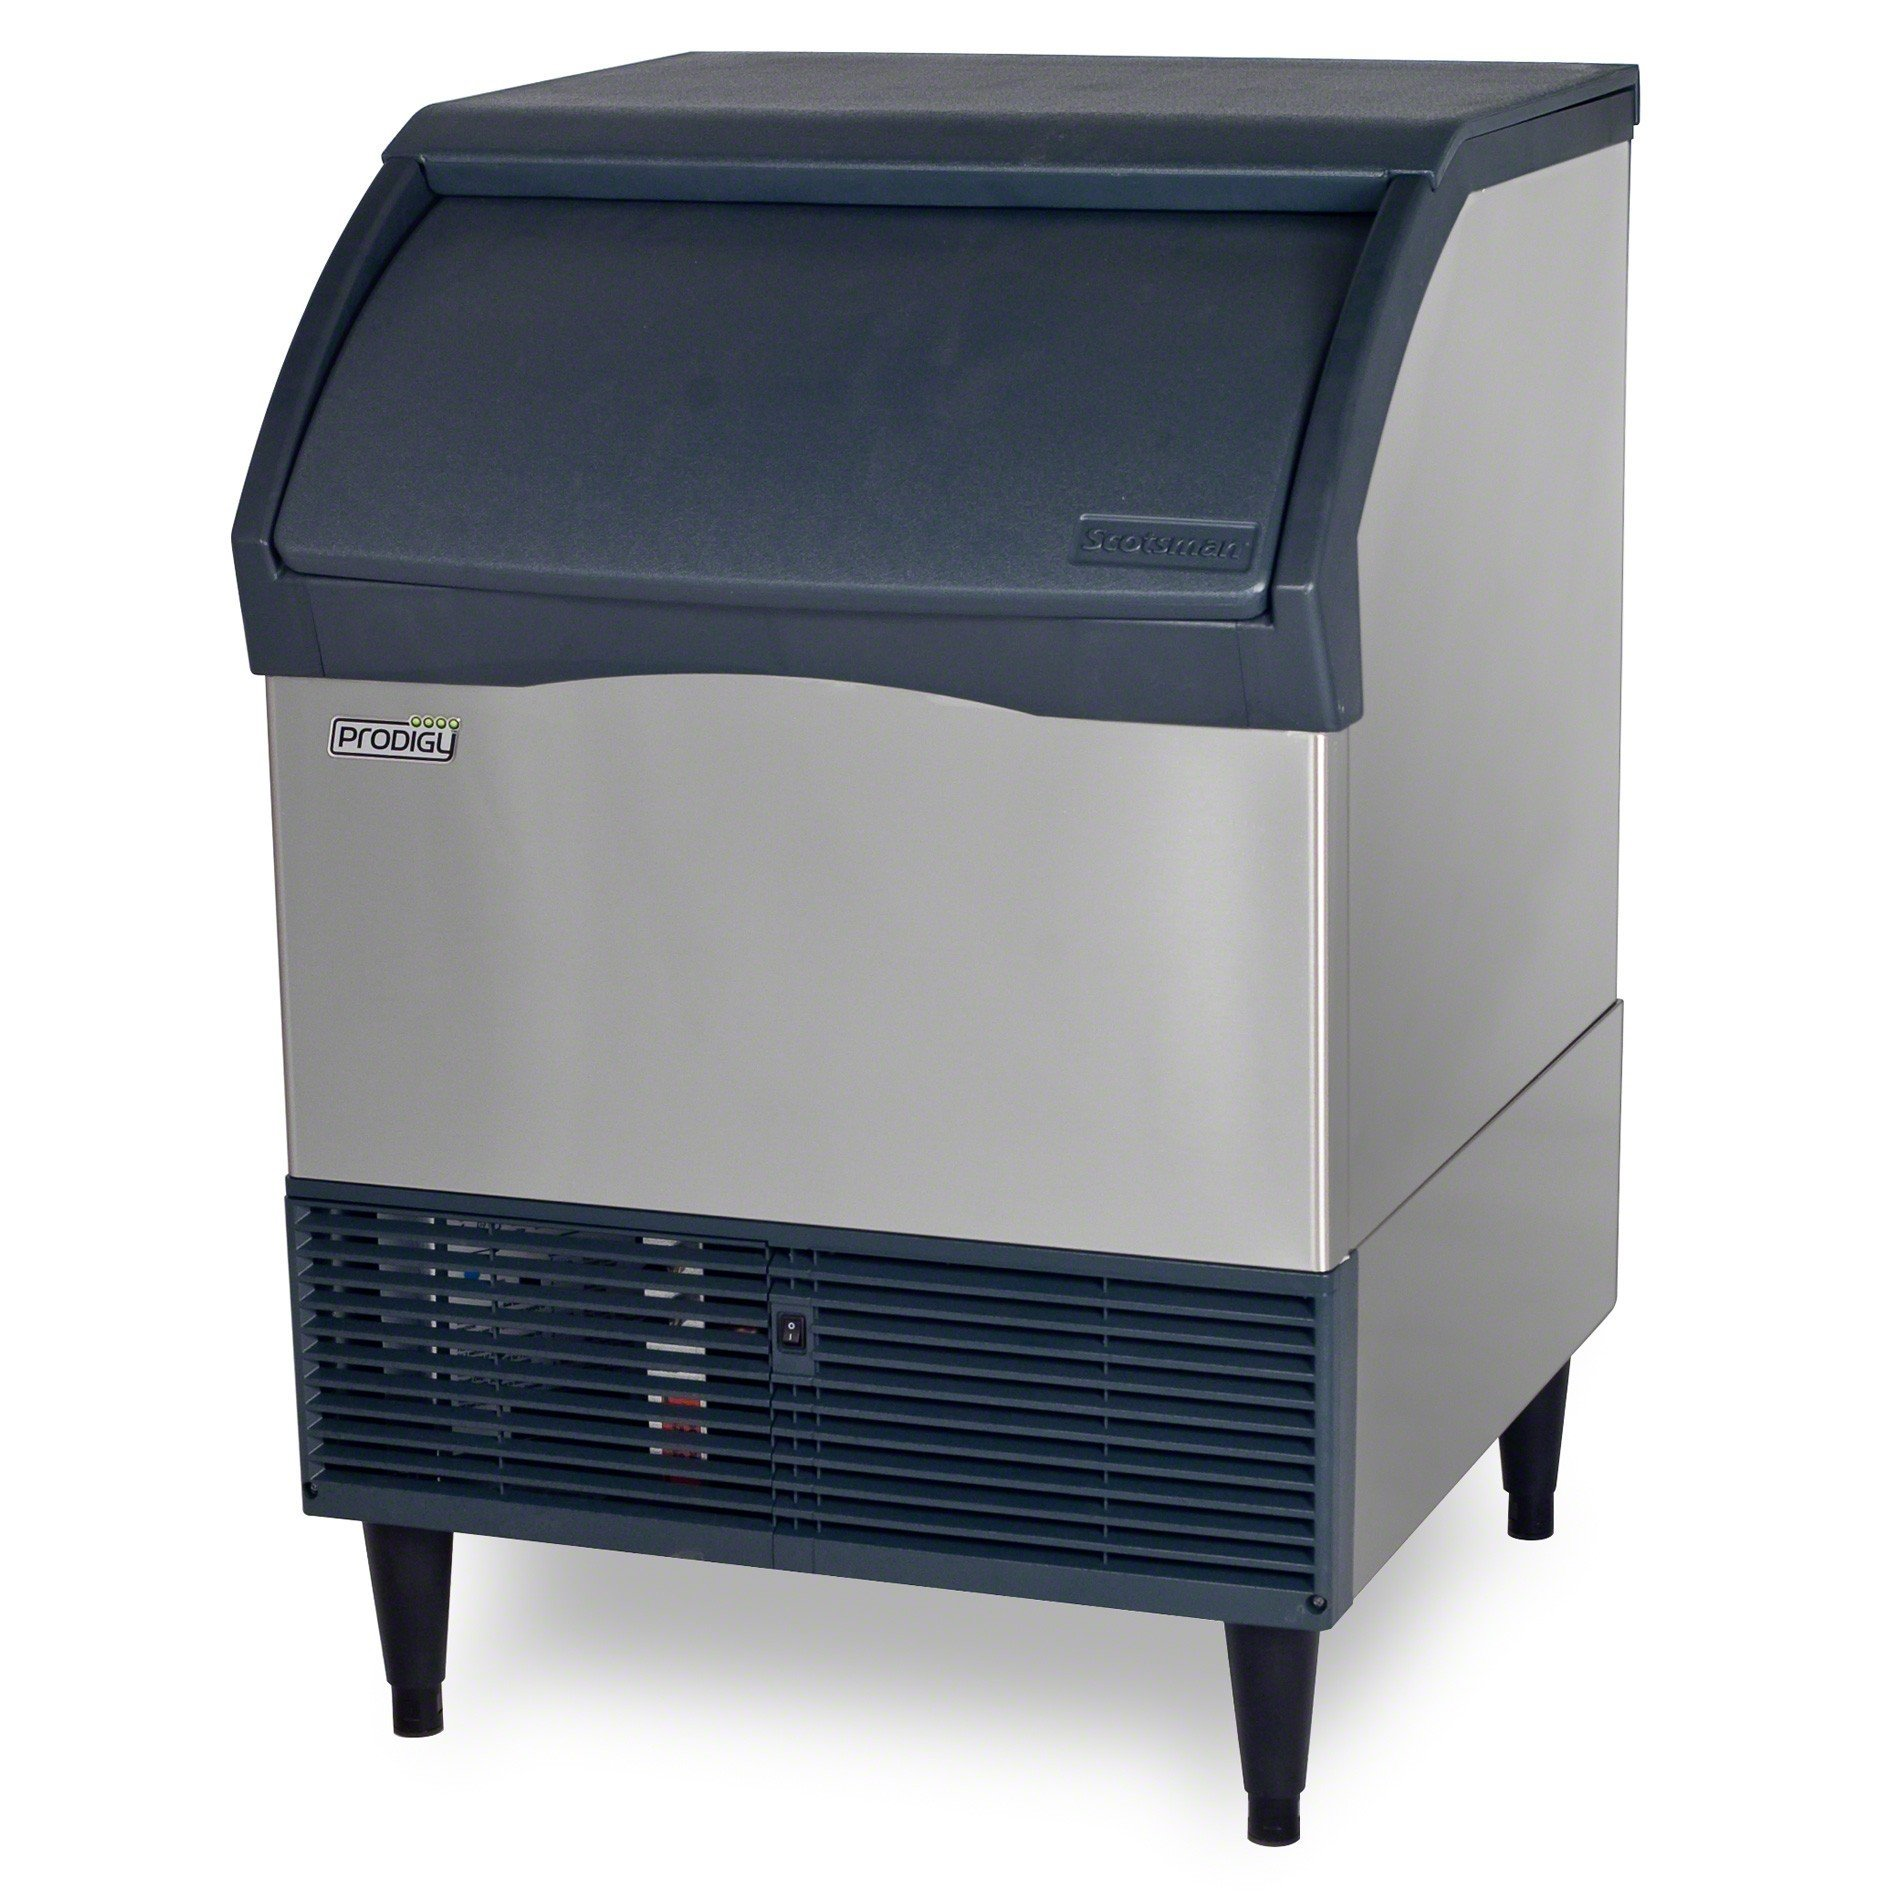 Scotsman CU1526SA Prodigy Self-Contained Undercounter Ice Machine, Air Condenser 150 lb. Production 80 lb. Storage by Scotsman